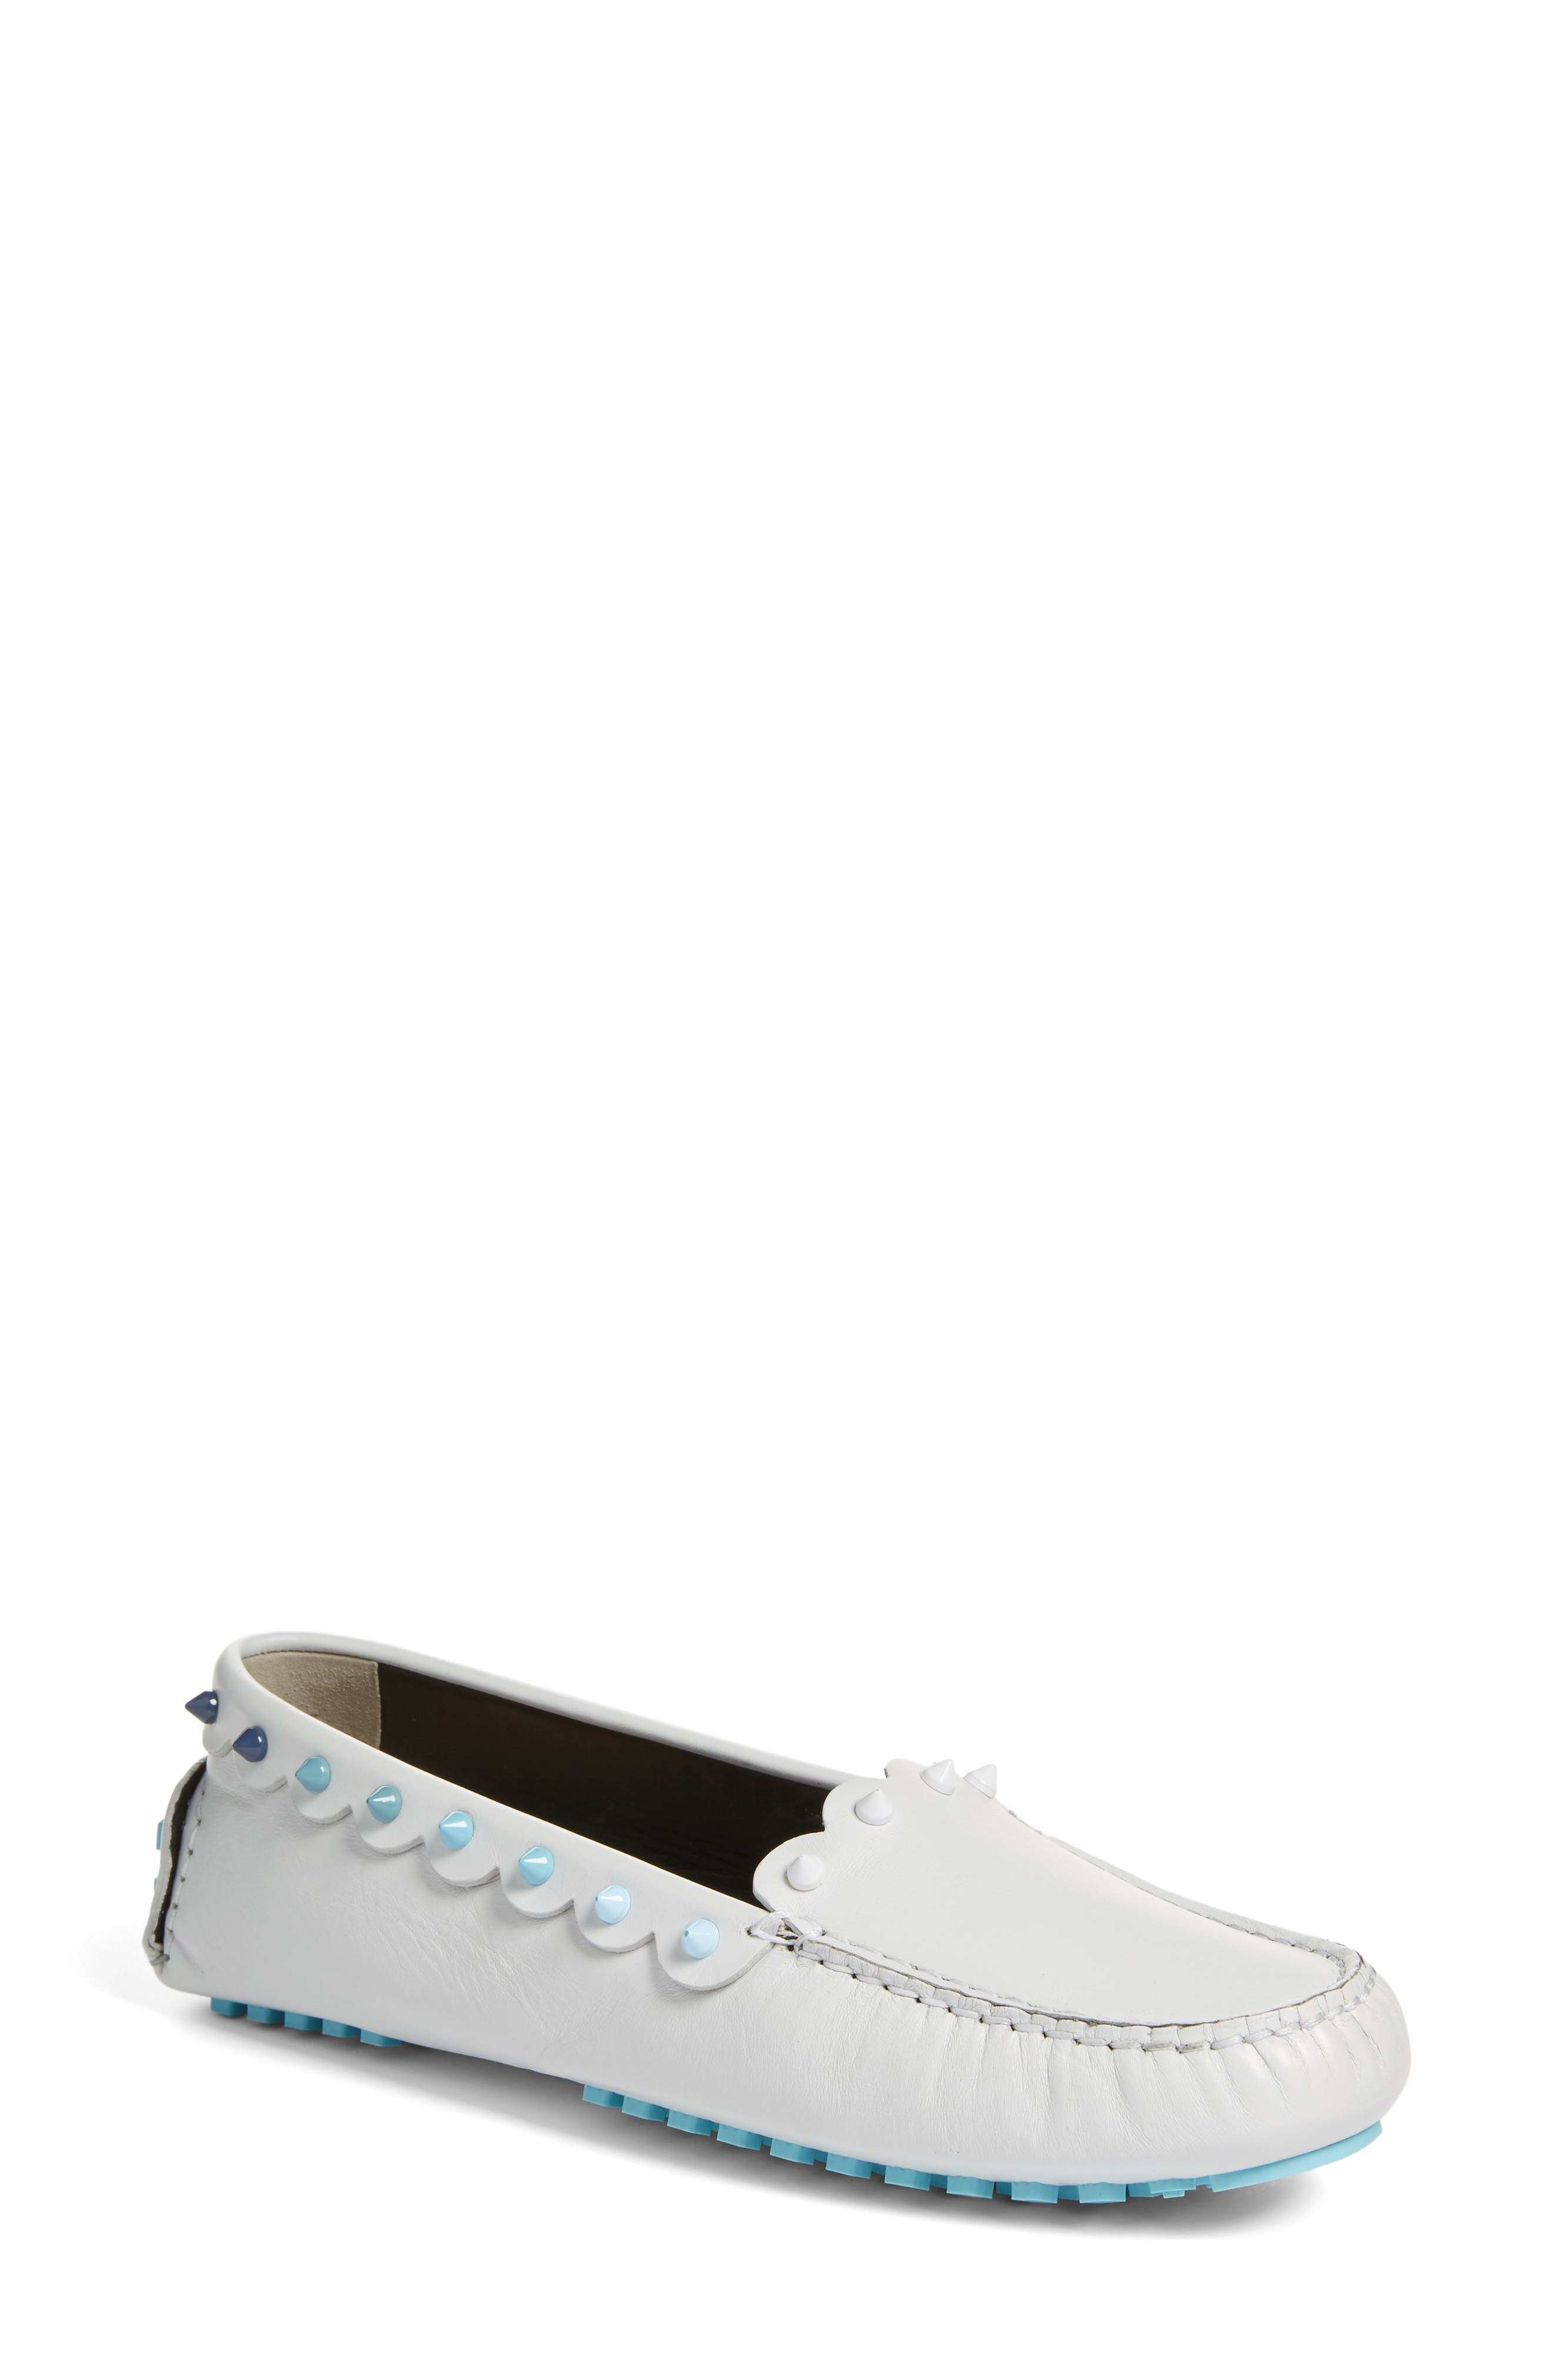 Scallop Stud Driving Moccasin,                         Main,                         color, 142